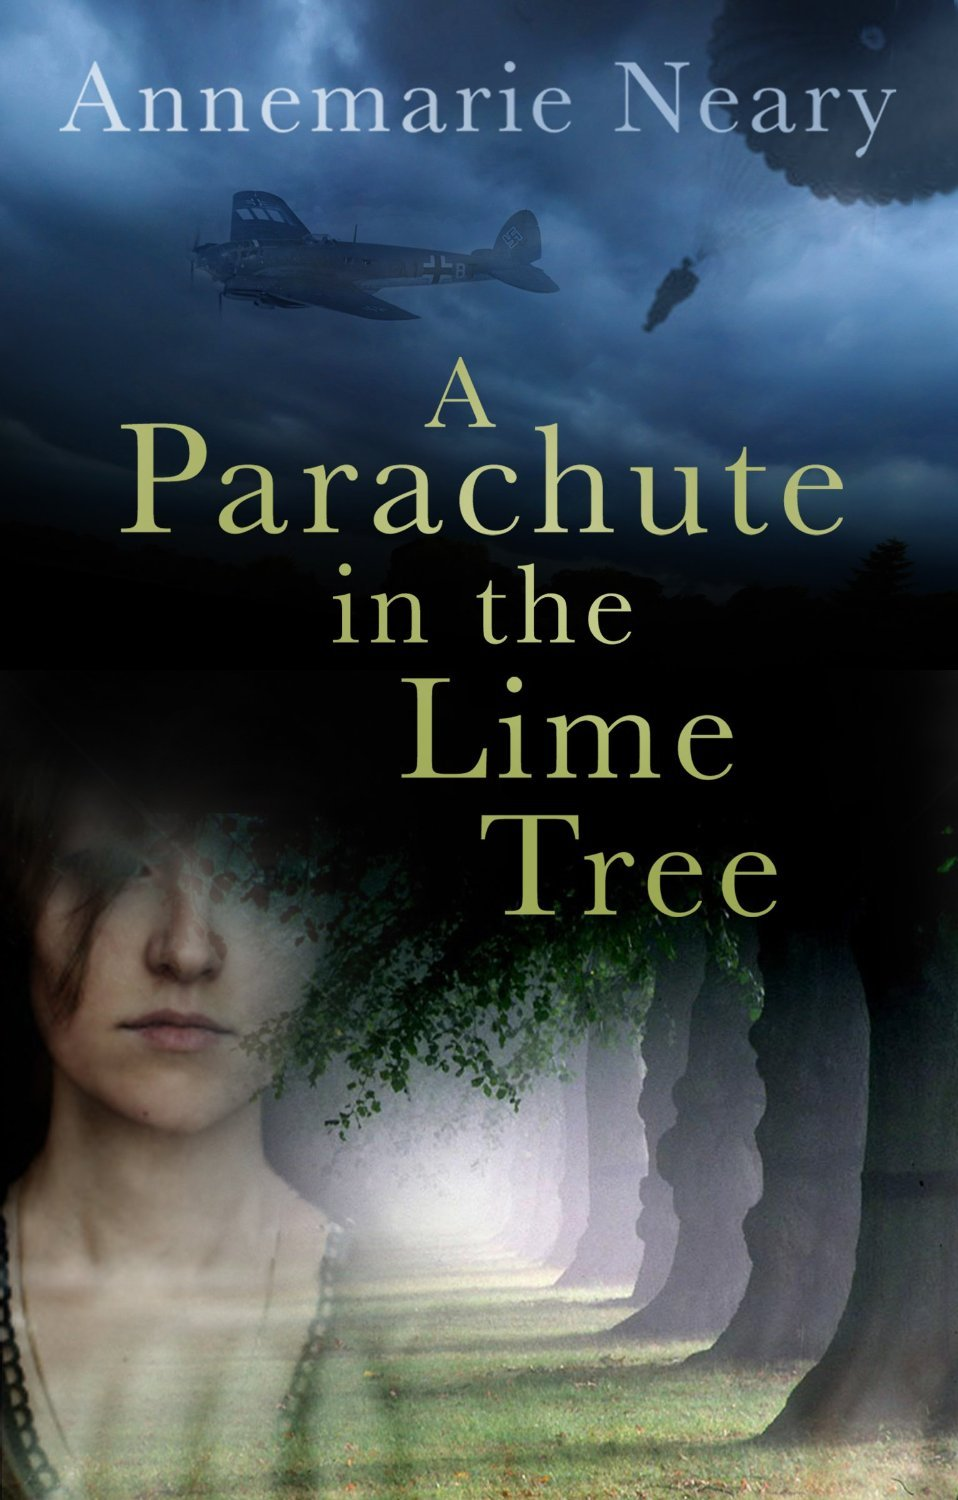 A Parachute in the Lime Tree: Love and Loss Between the Blitz and the Dublin Bombings Annemarie Neary